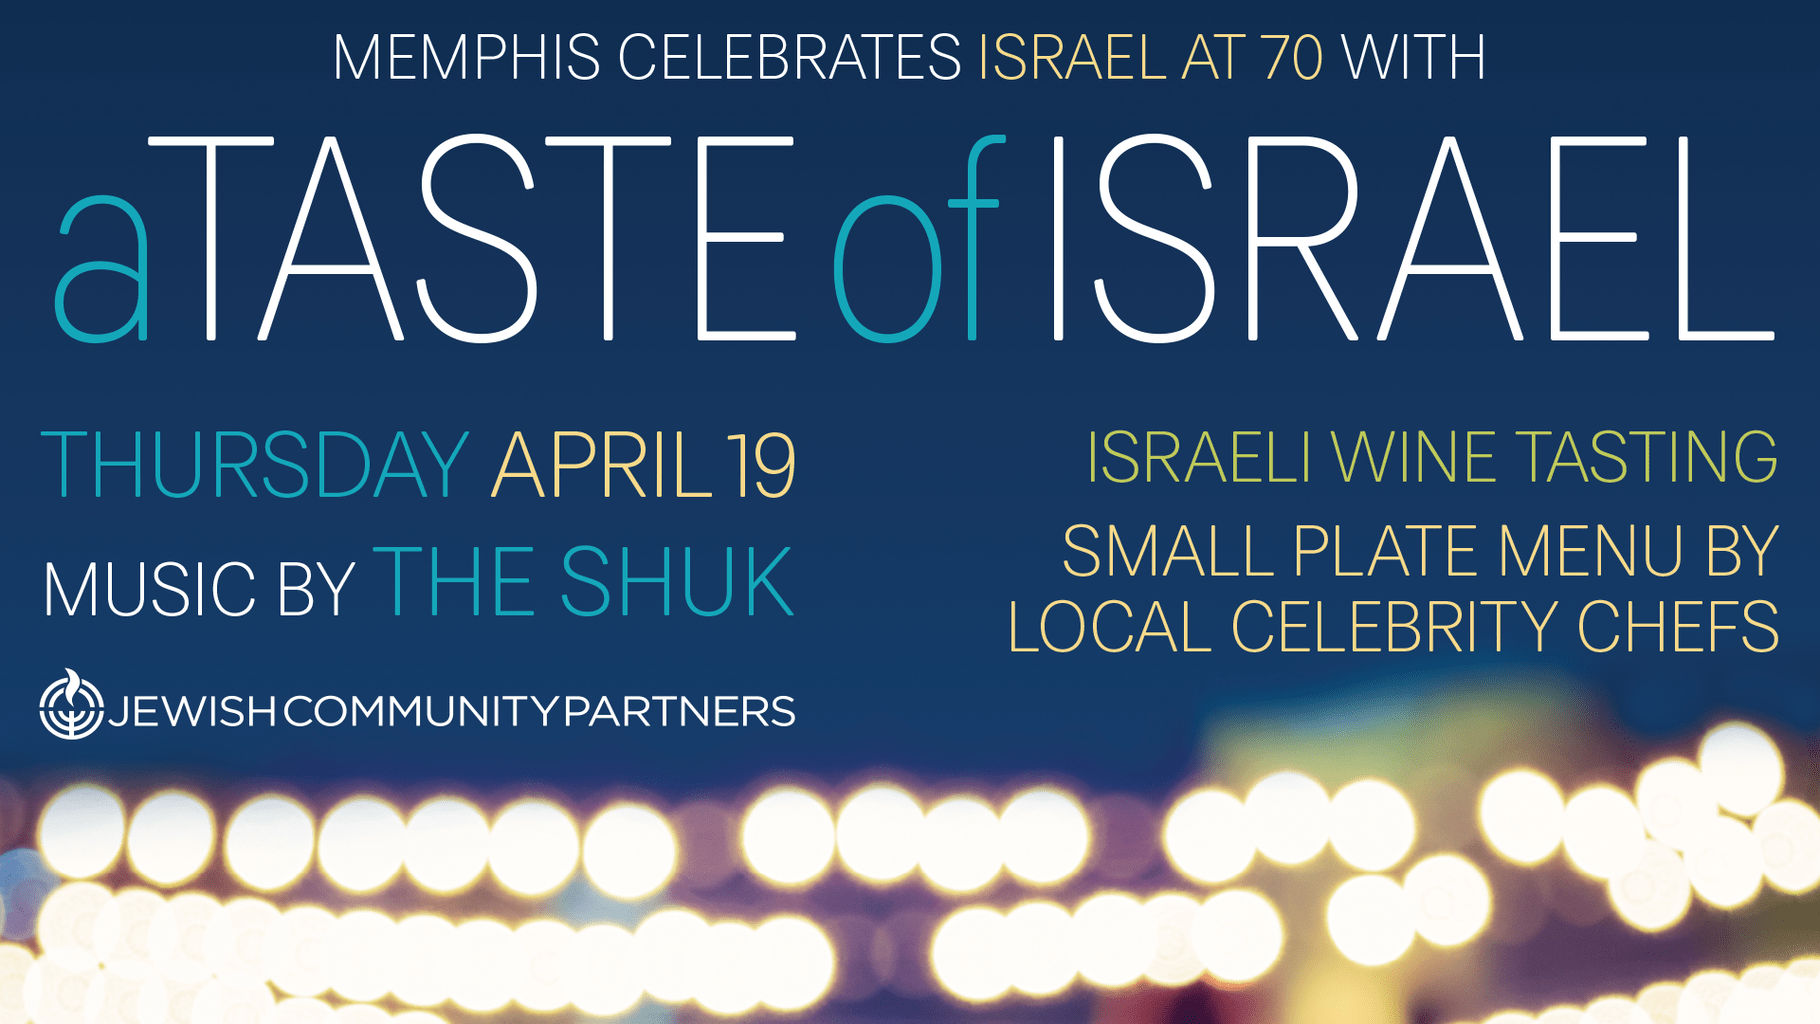 a-taste-of-israel-celebrating-israel-at-70-with-a-special-night